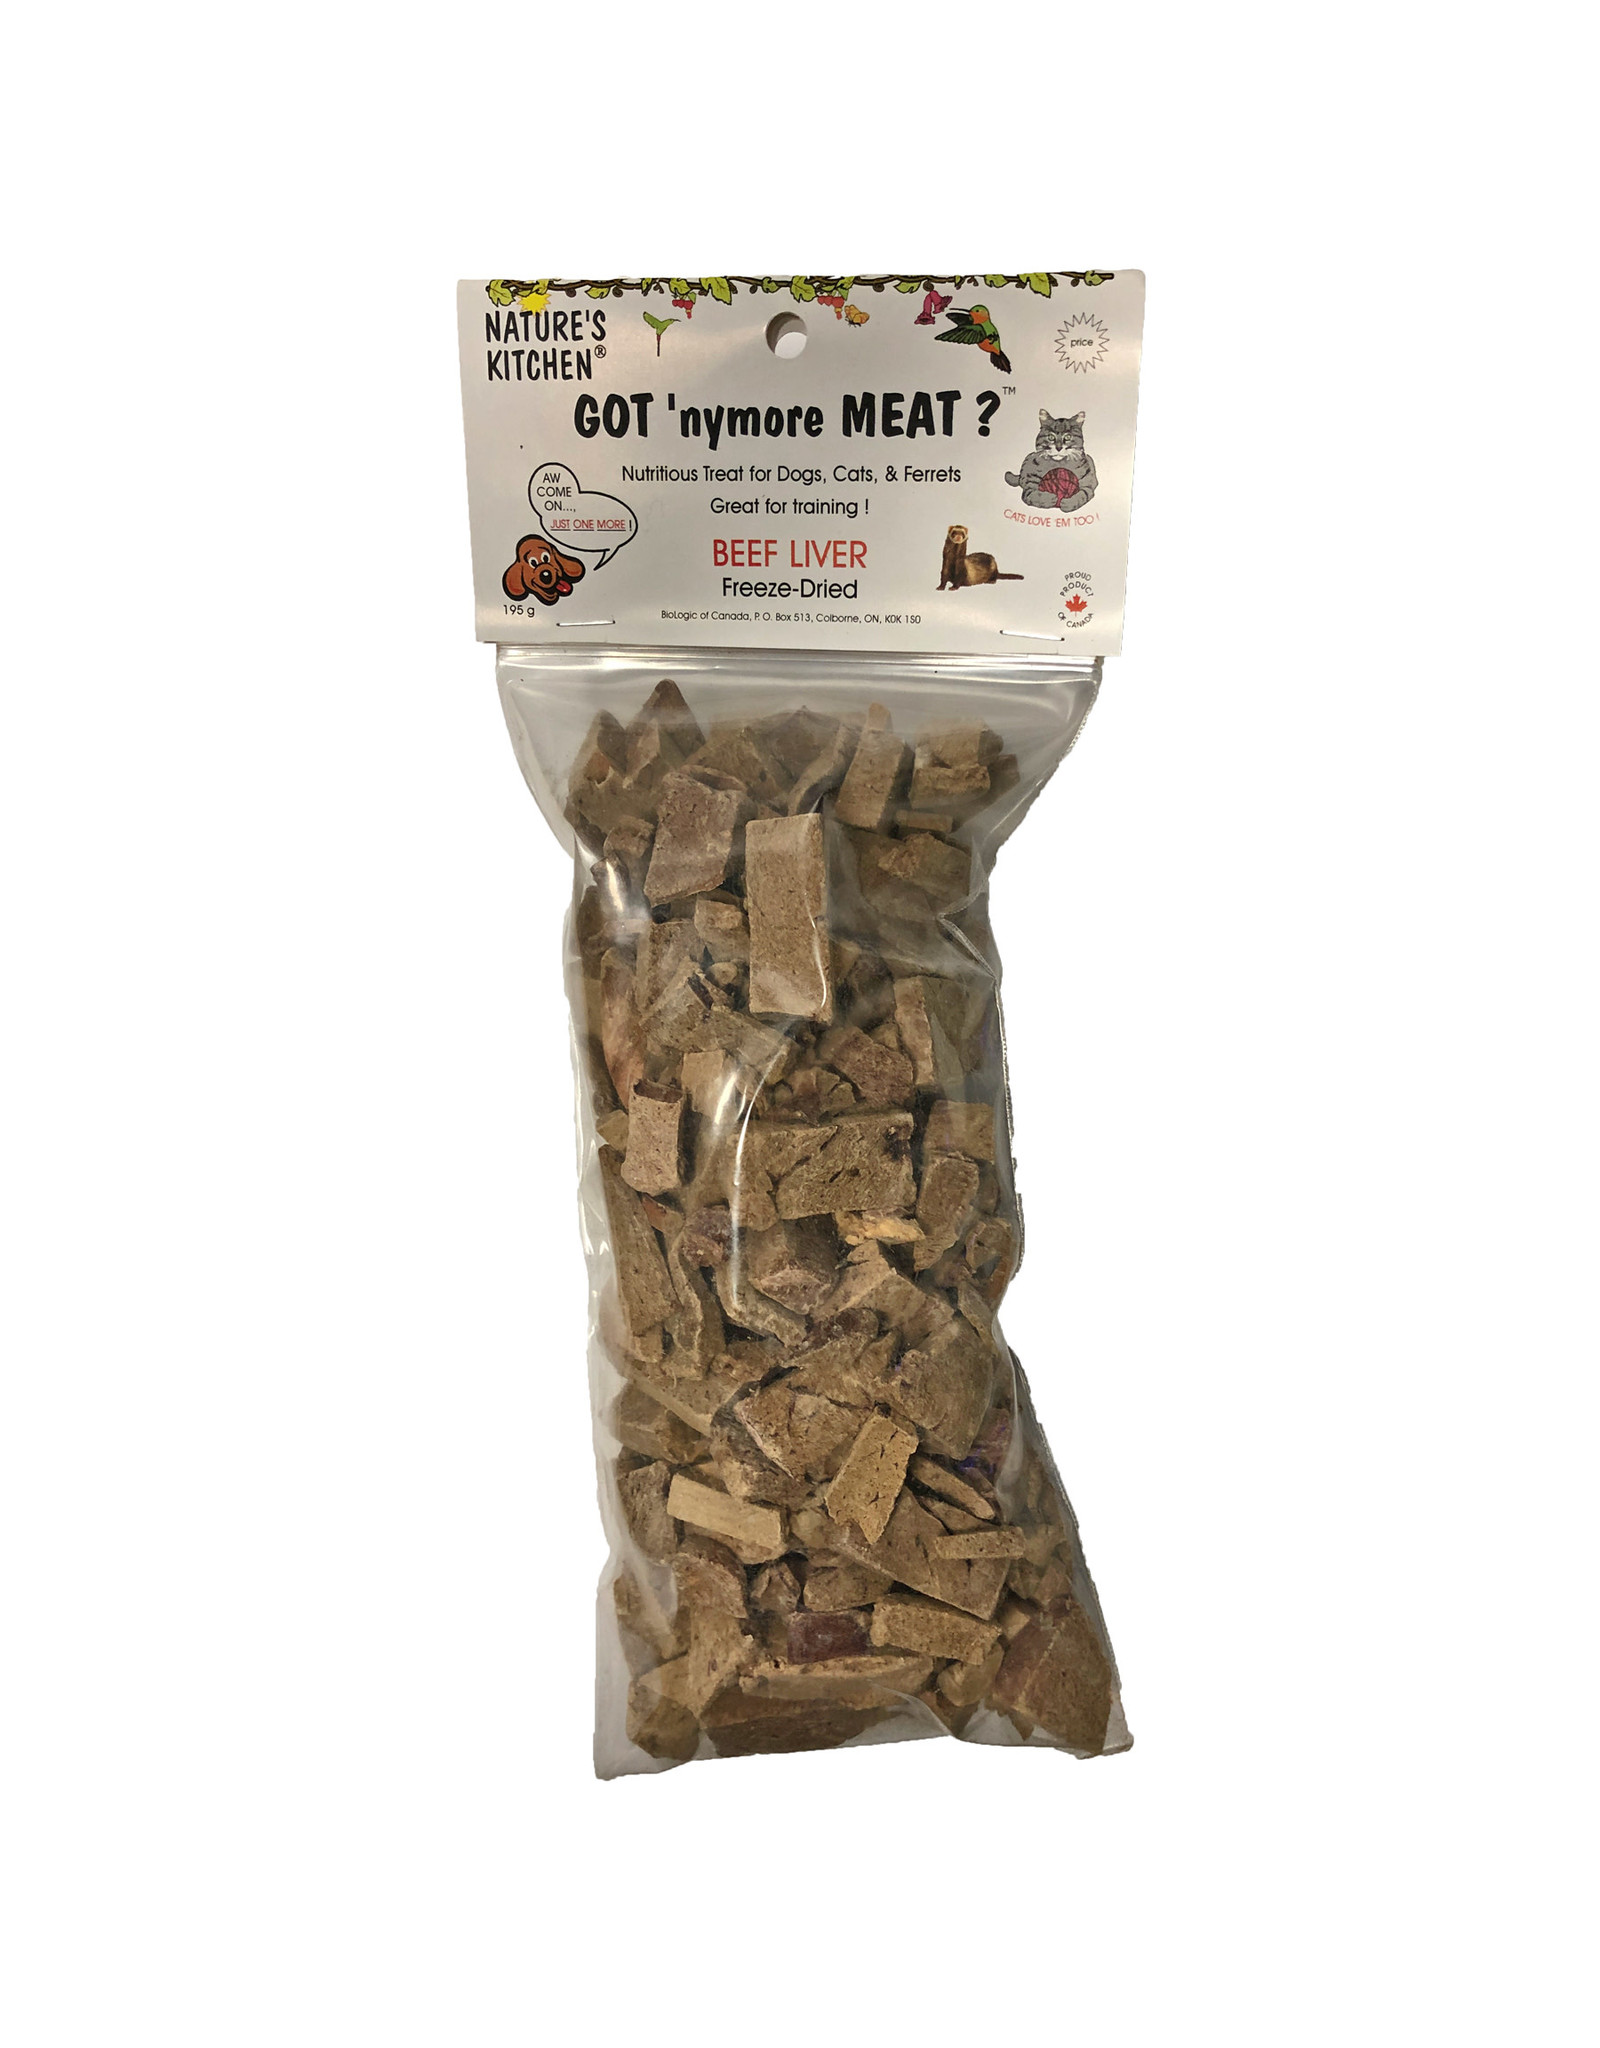 NATURE'S KITCHEN GOT NYMORE BEEF LIVER 195g